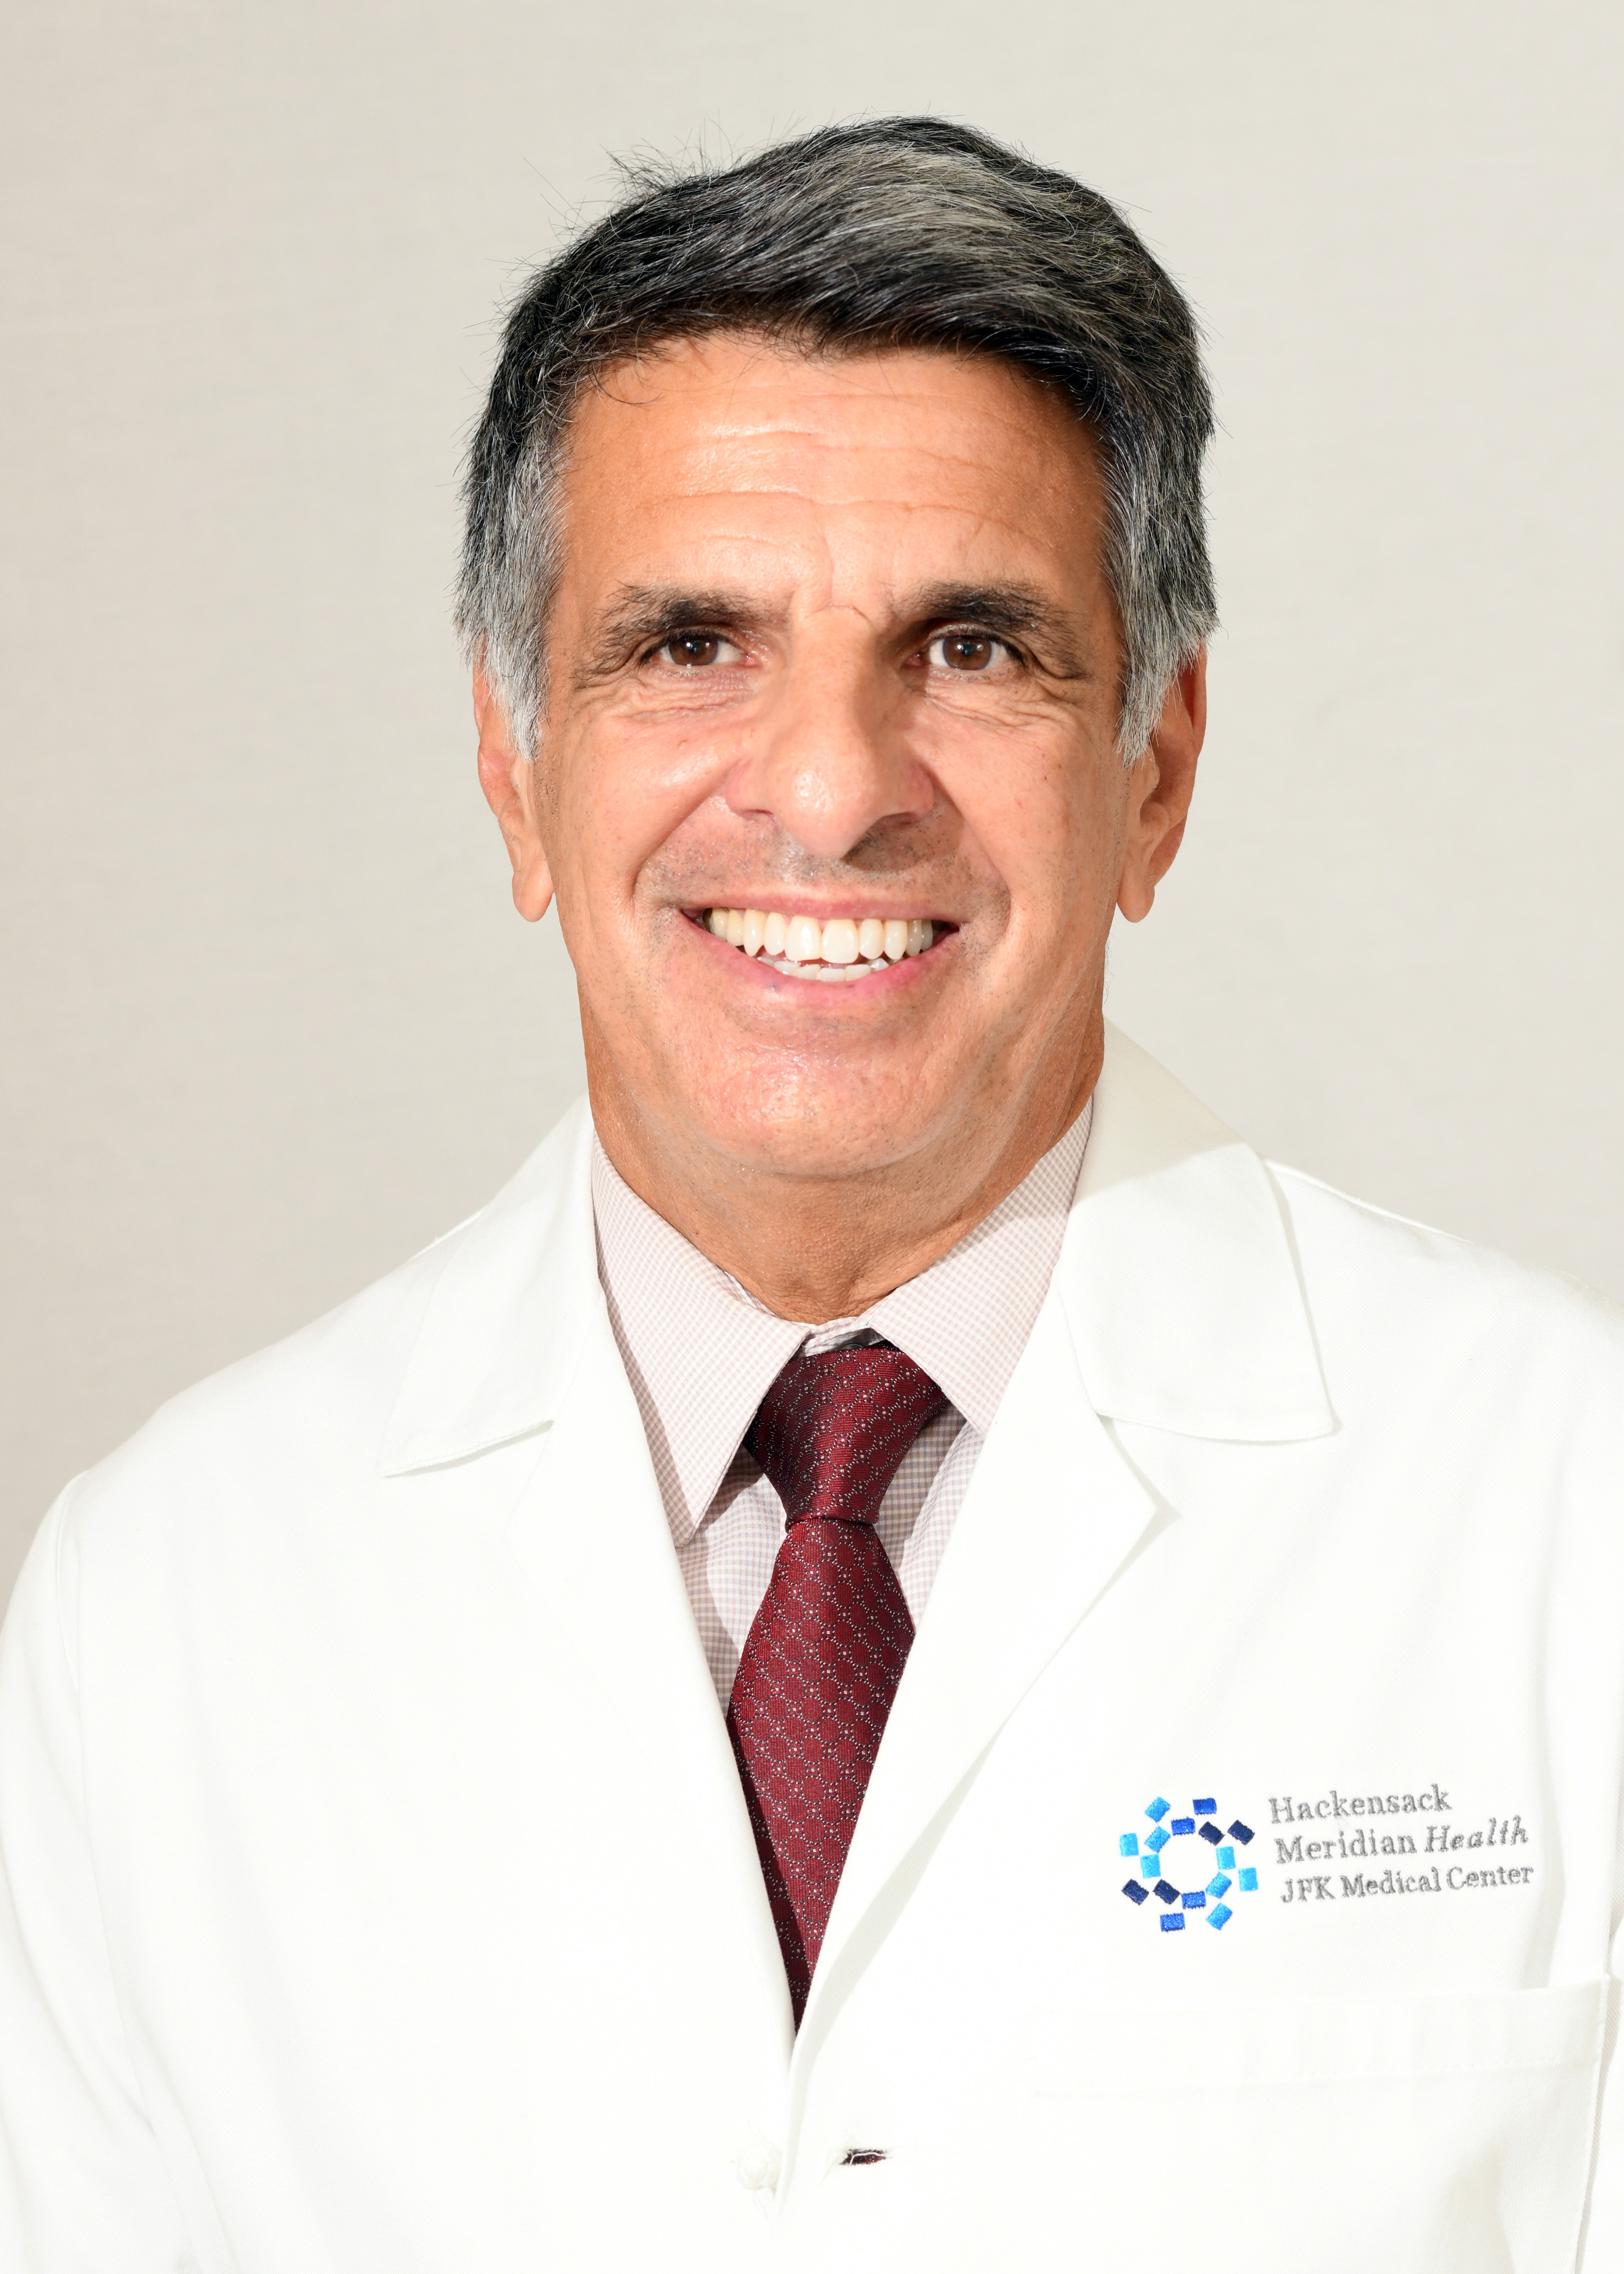 Image of Peter Polos, M.D., Ph.D.